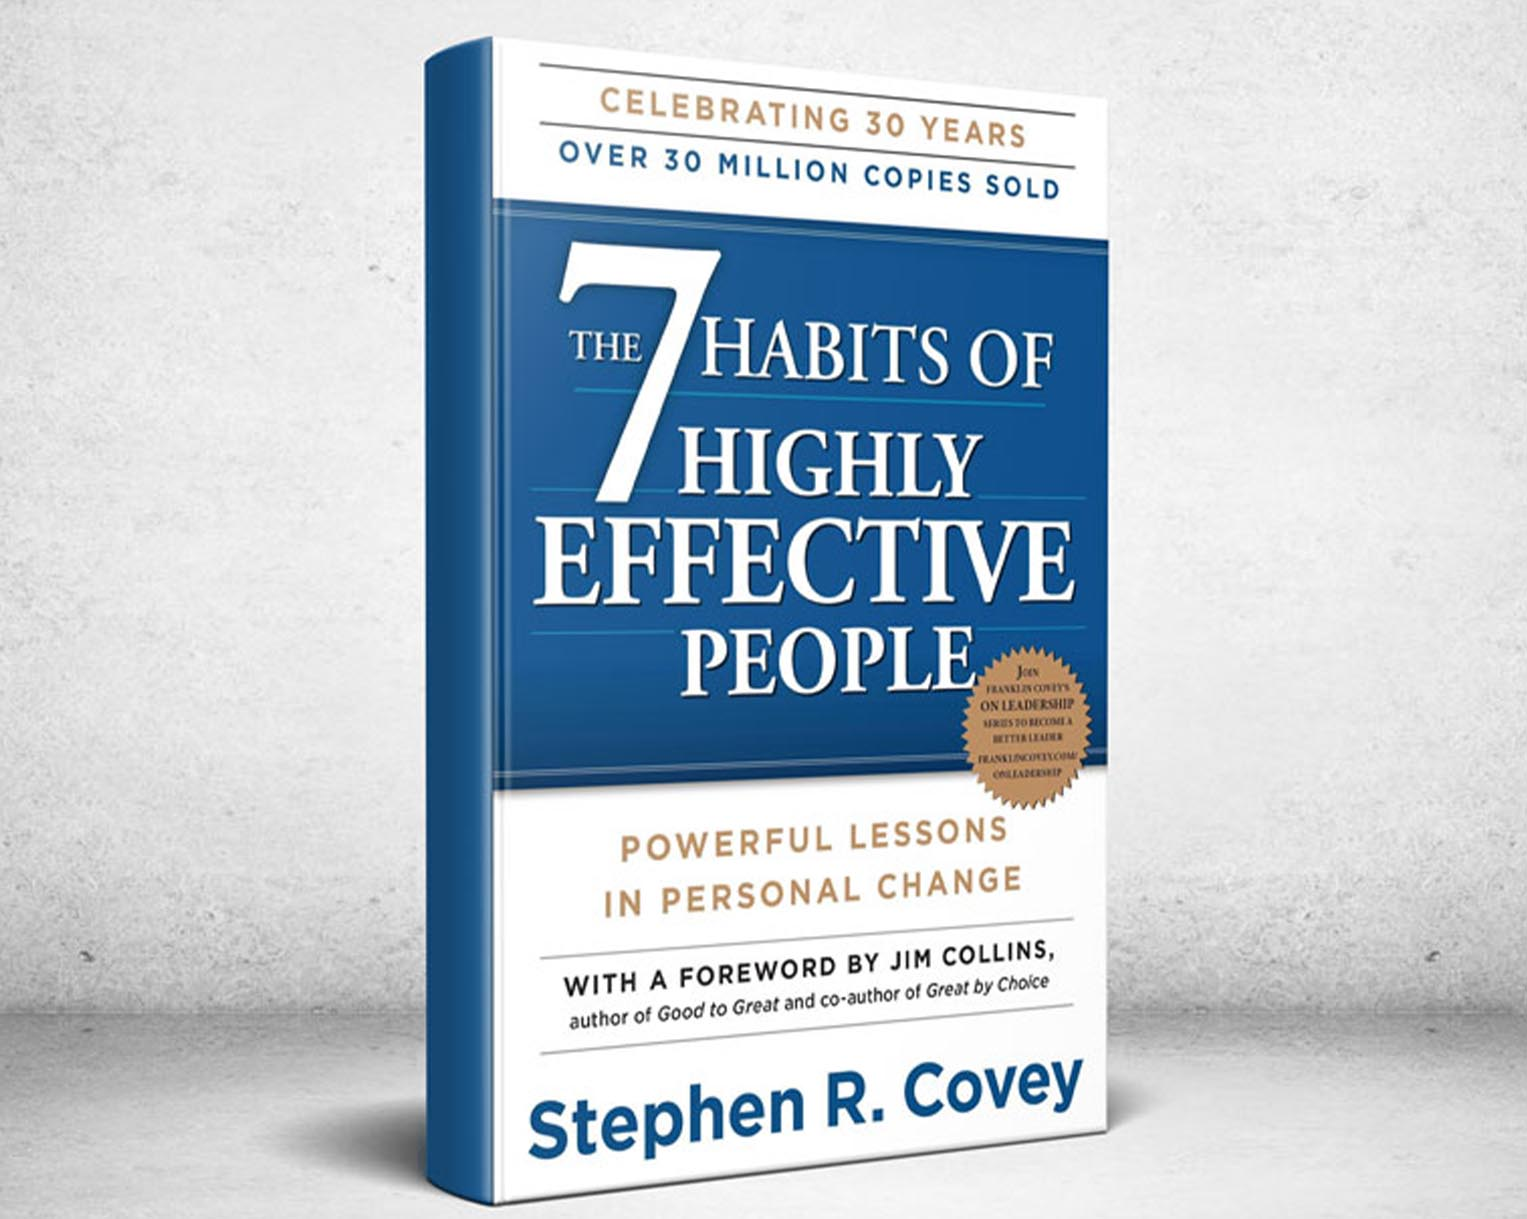 Grove HR - HR books - 7 habits of highly effective people